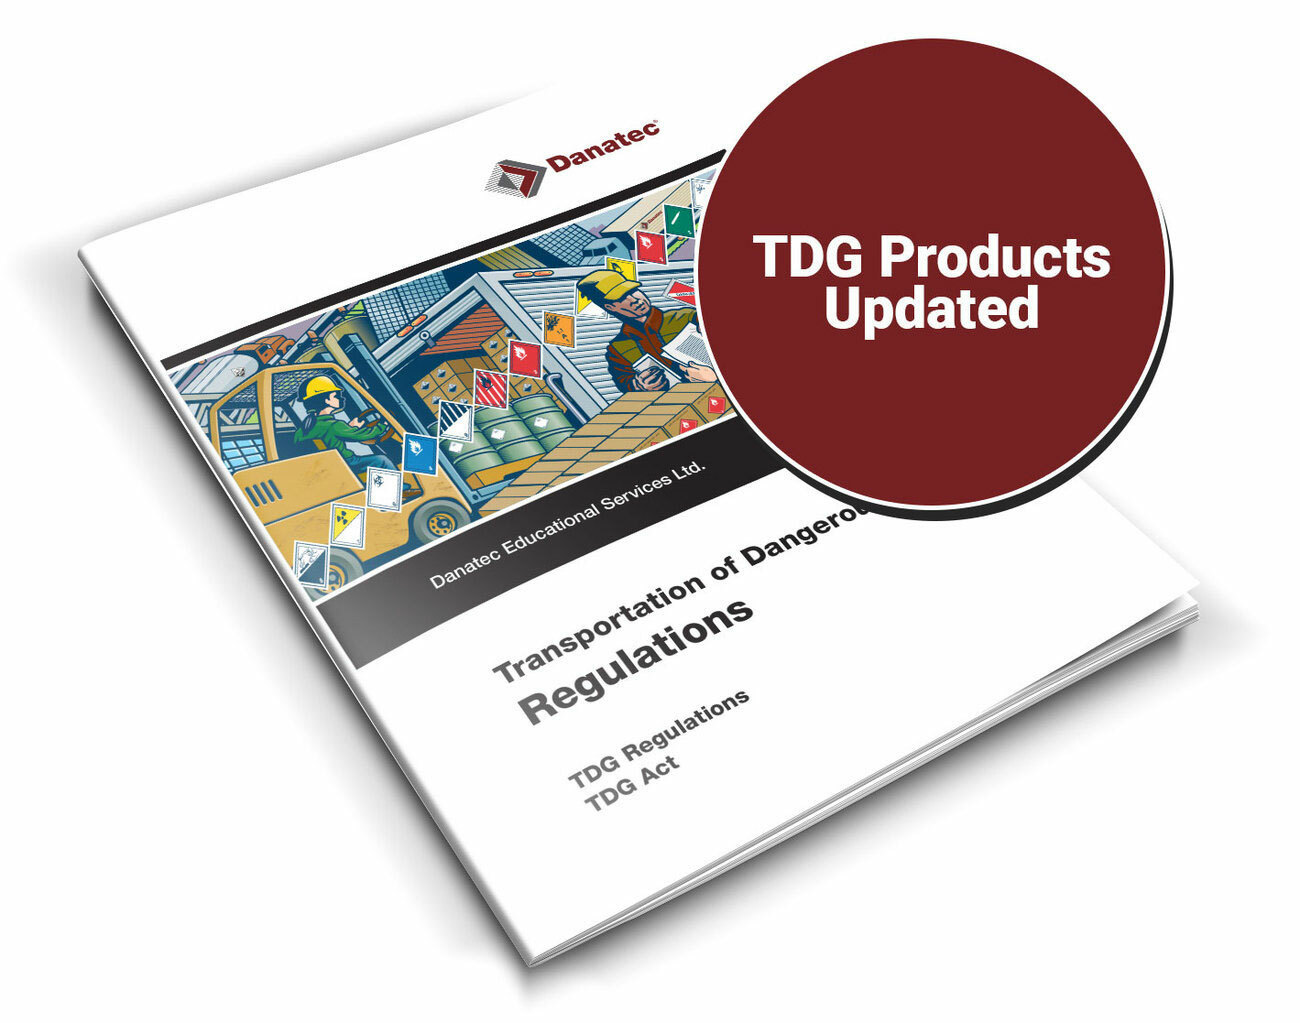 danatec-tdg-regulations